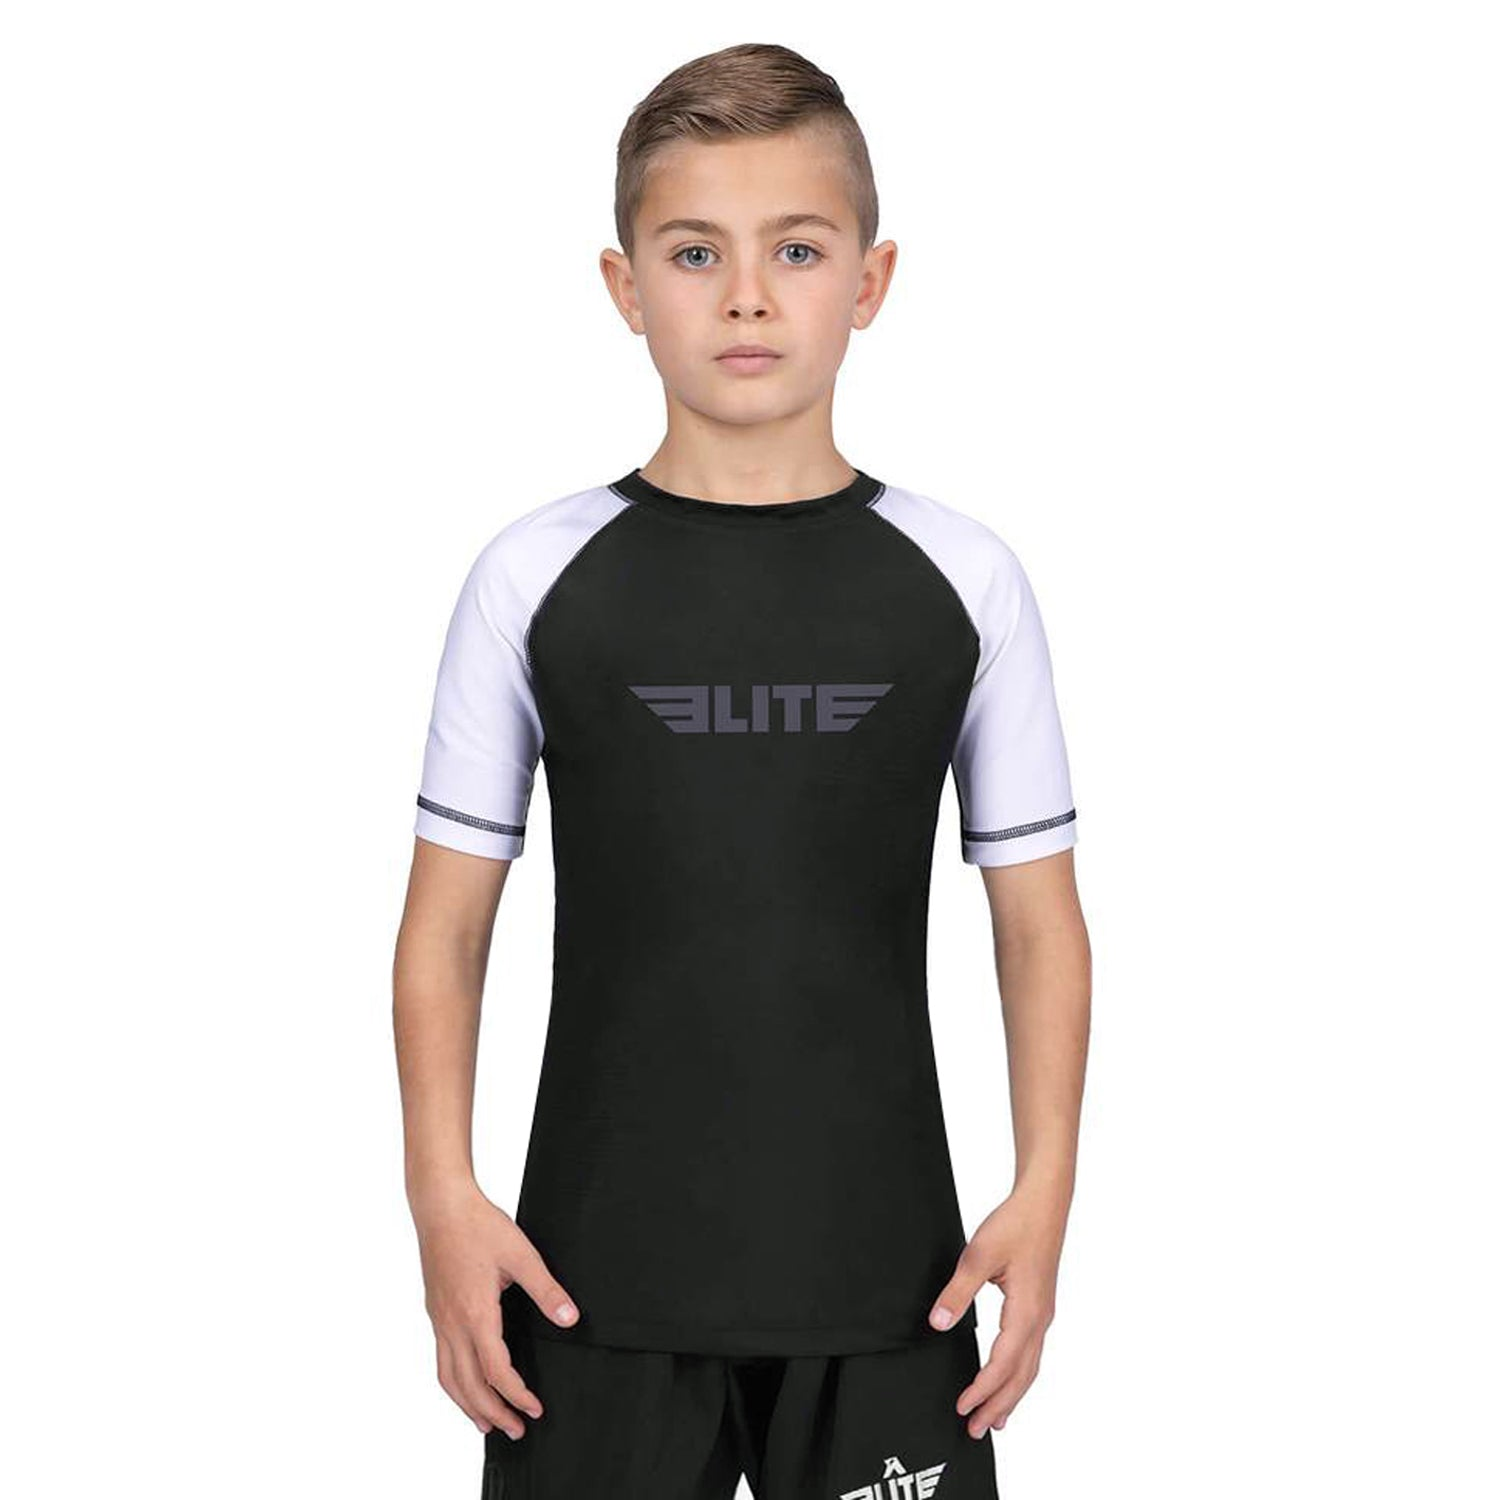 Elite Sports Standard White/Black Short Sleeve Kids Muay Thai Rash Guard